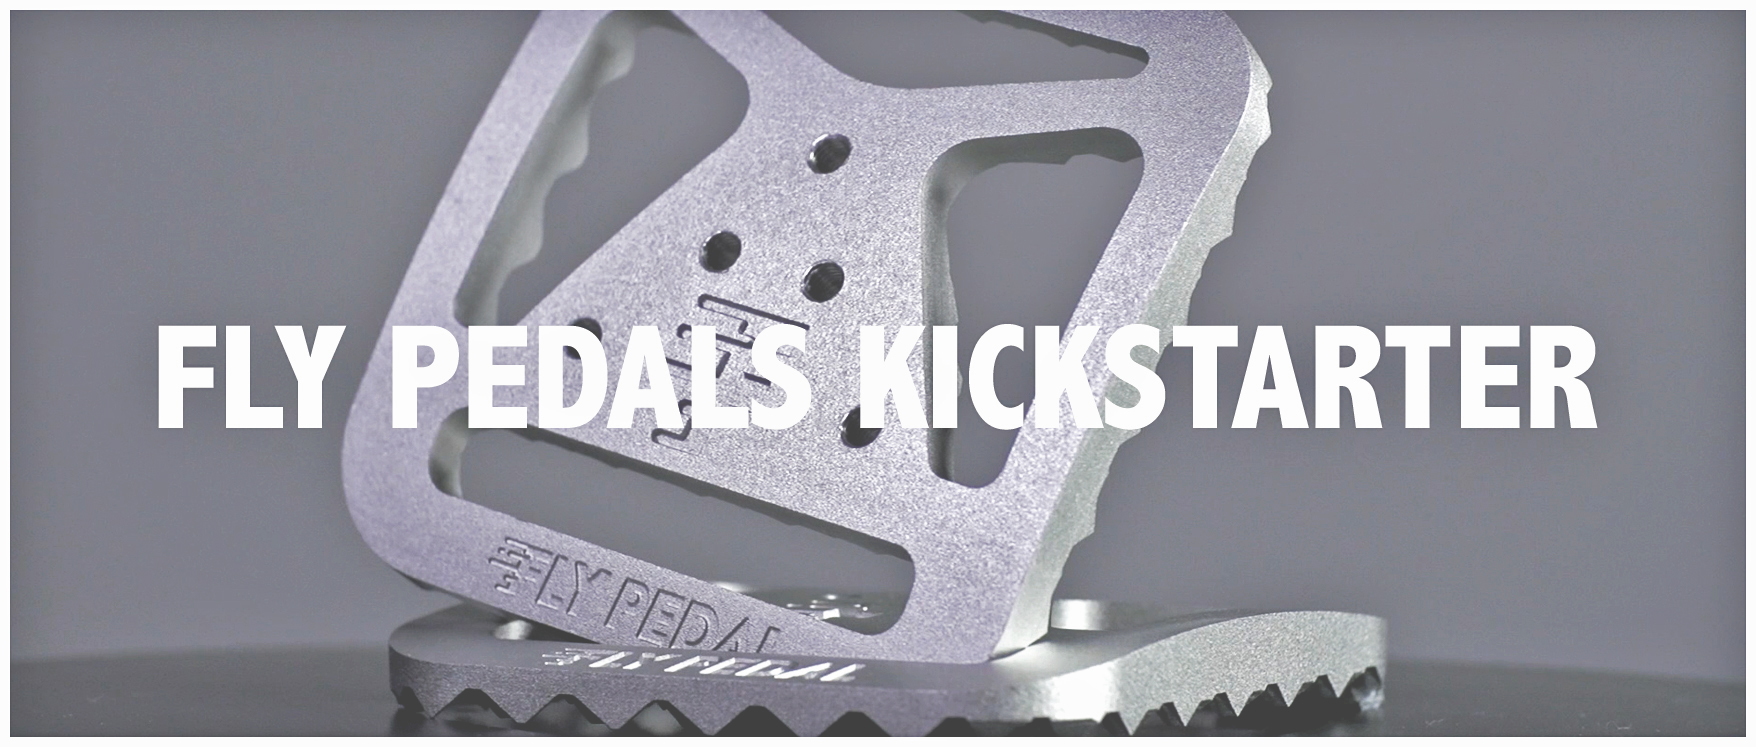 Garlic Media Group's Client Video Examples Fly Pedals Kickstarter